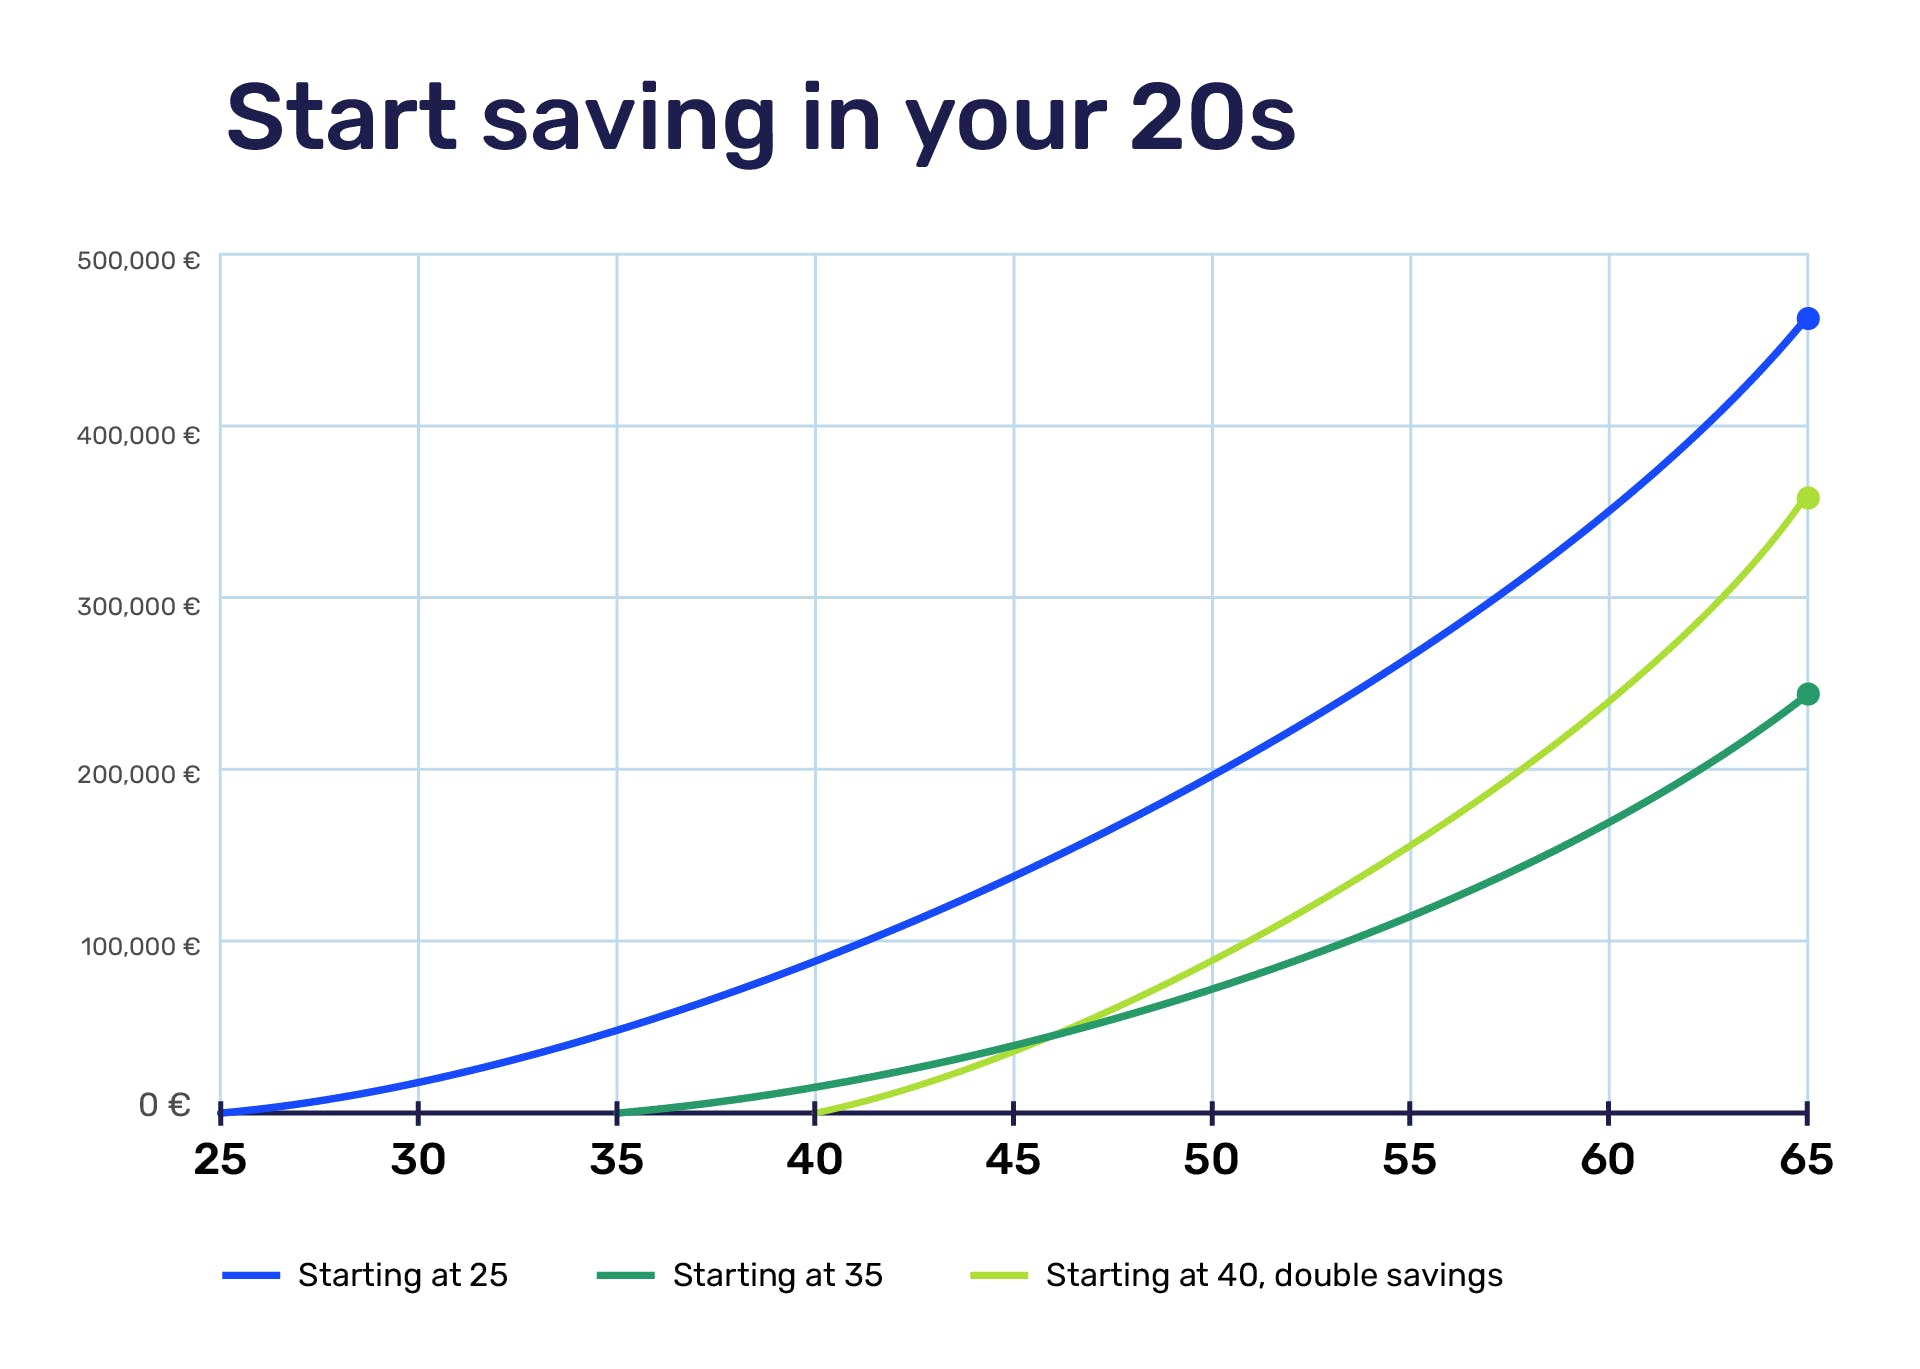 The power of compound interest. If you start saving in your 20s, your net worth will be more than double vs. your 30s.